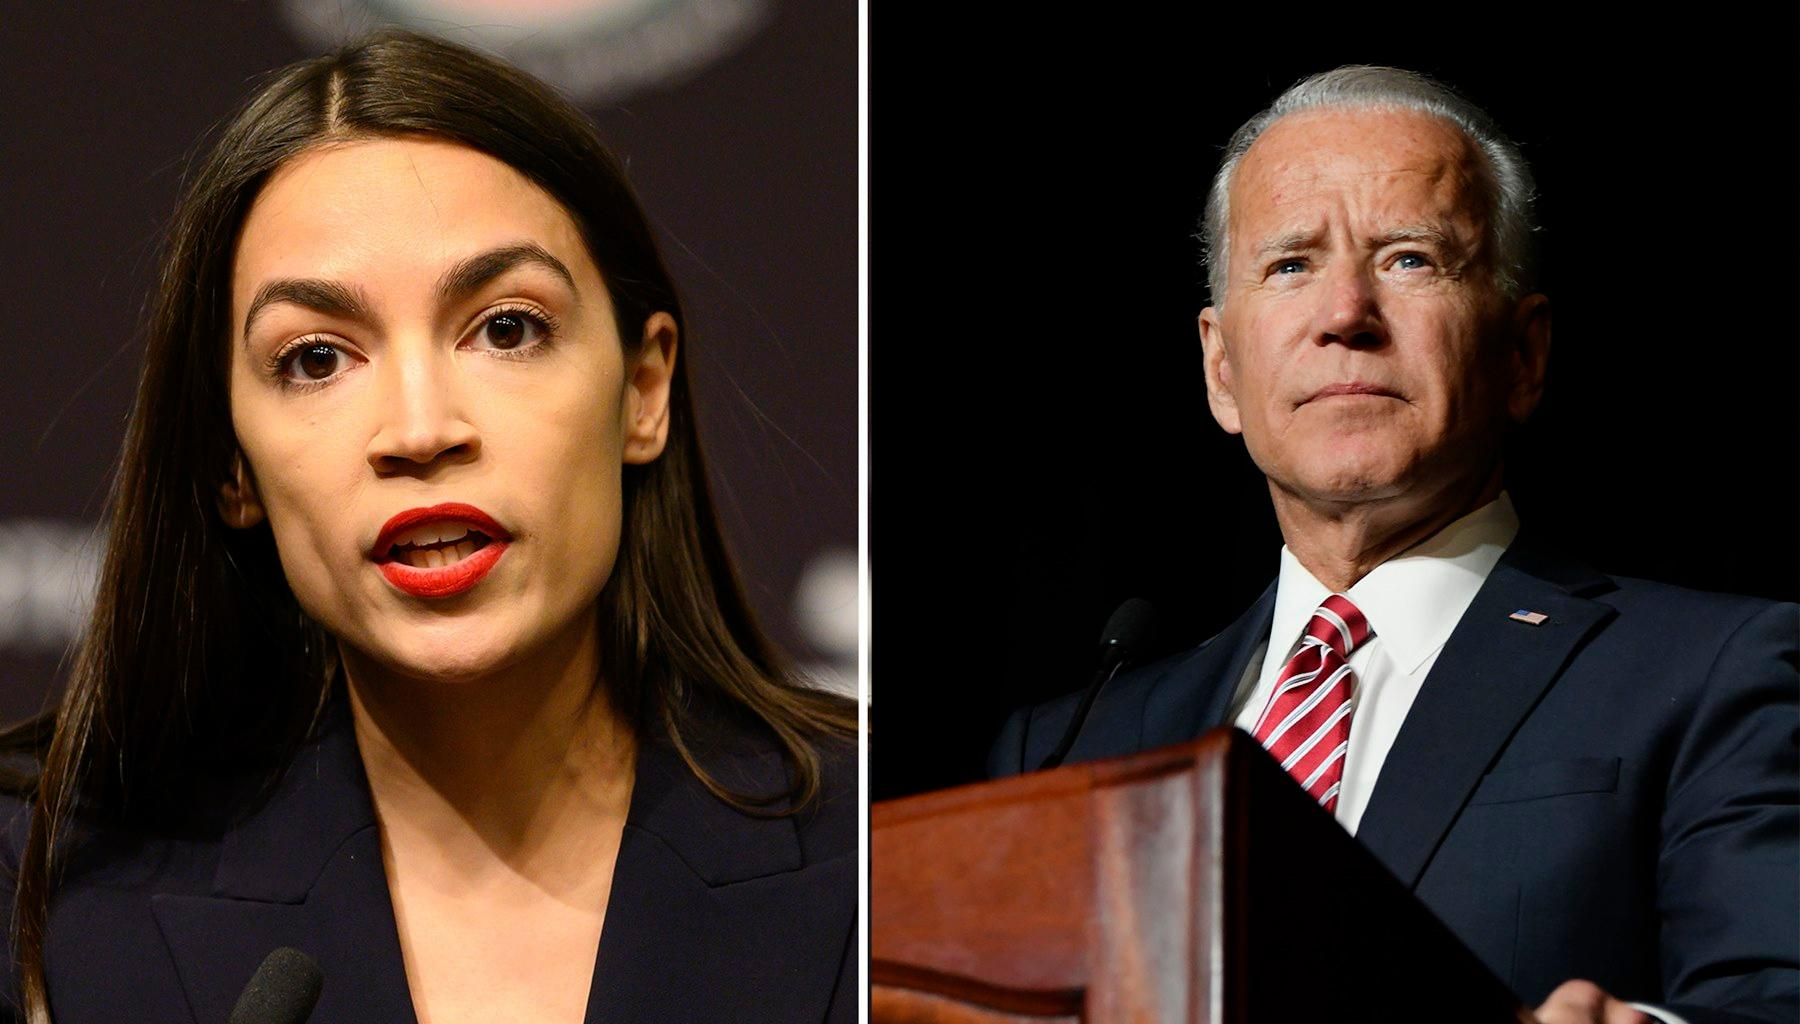 Joe Biden Offers An Olive Branch To Alexandria Ocasio-Cortez And Supporters Of The Bernie Sanders Wing In The Democratic Party -- He Wants To Focus On Beating Donald Trump